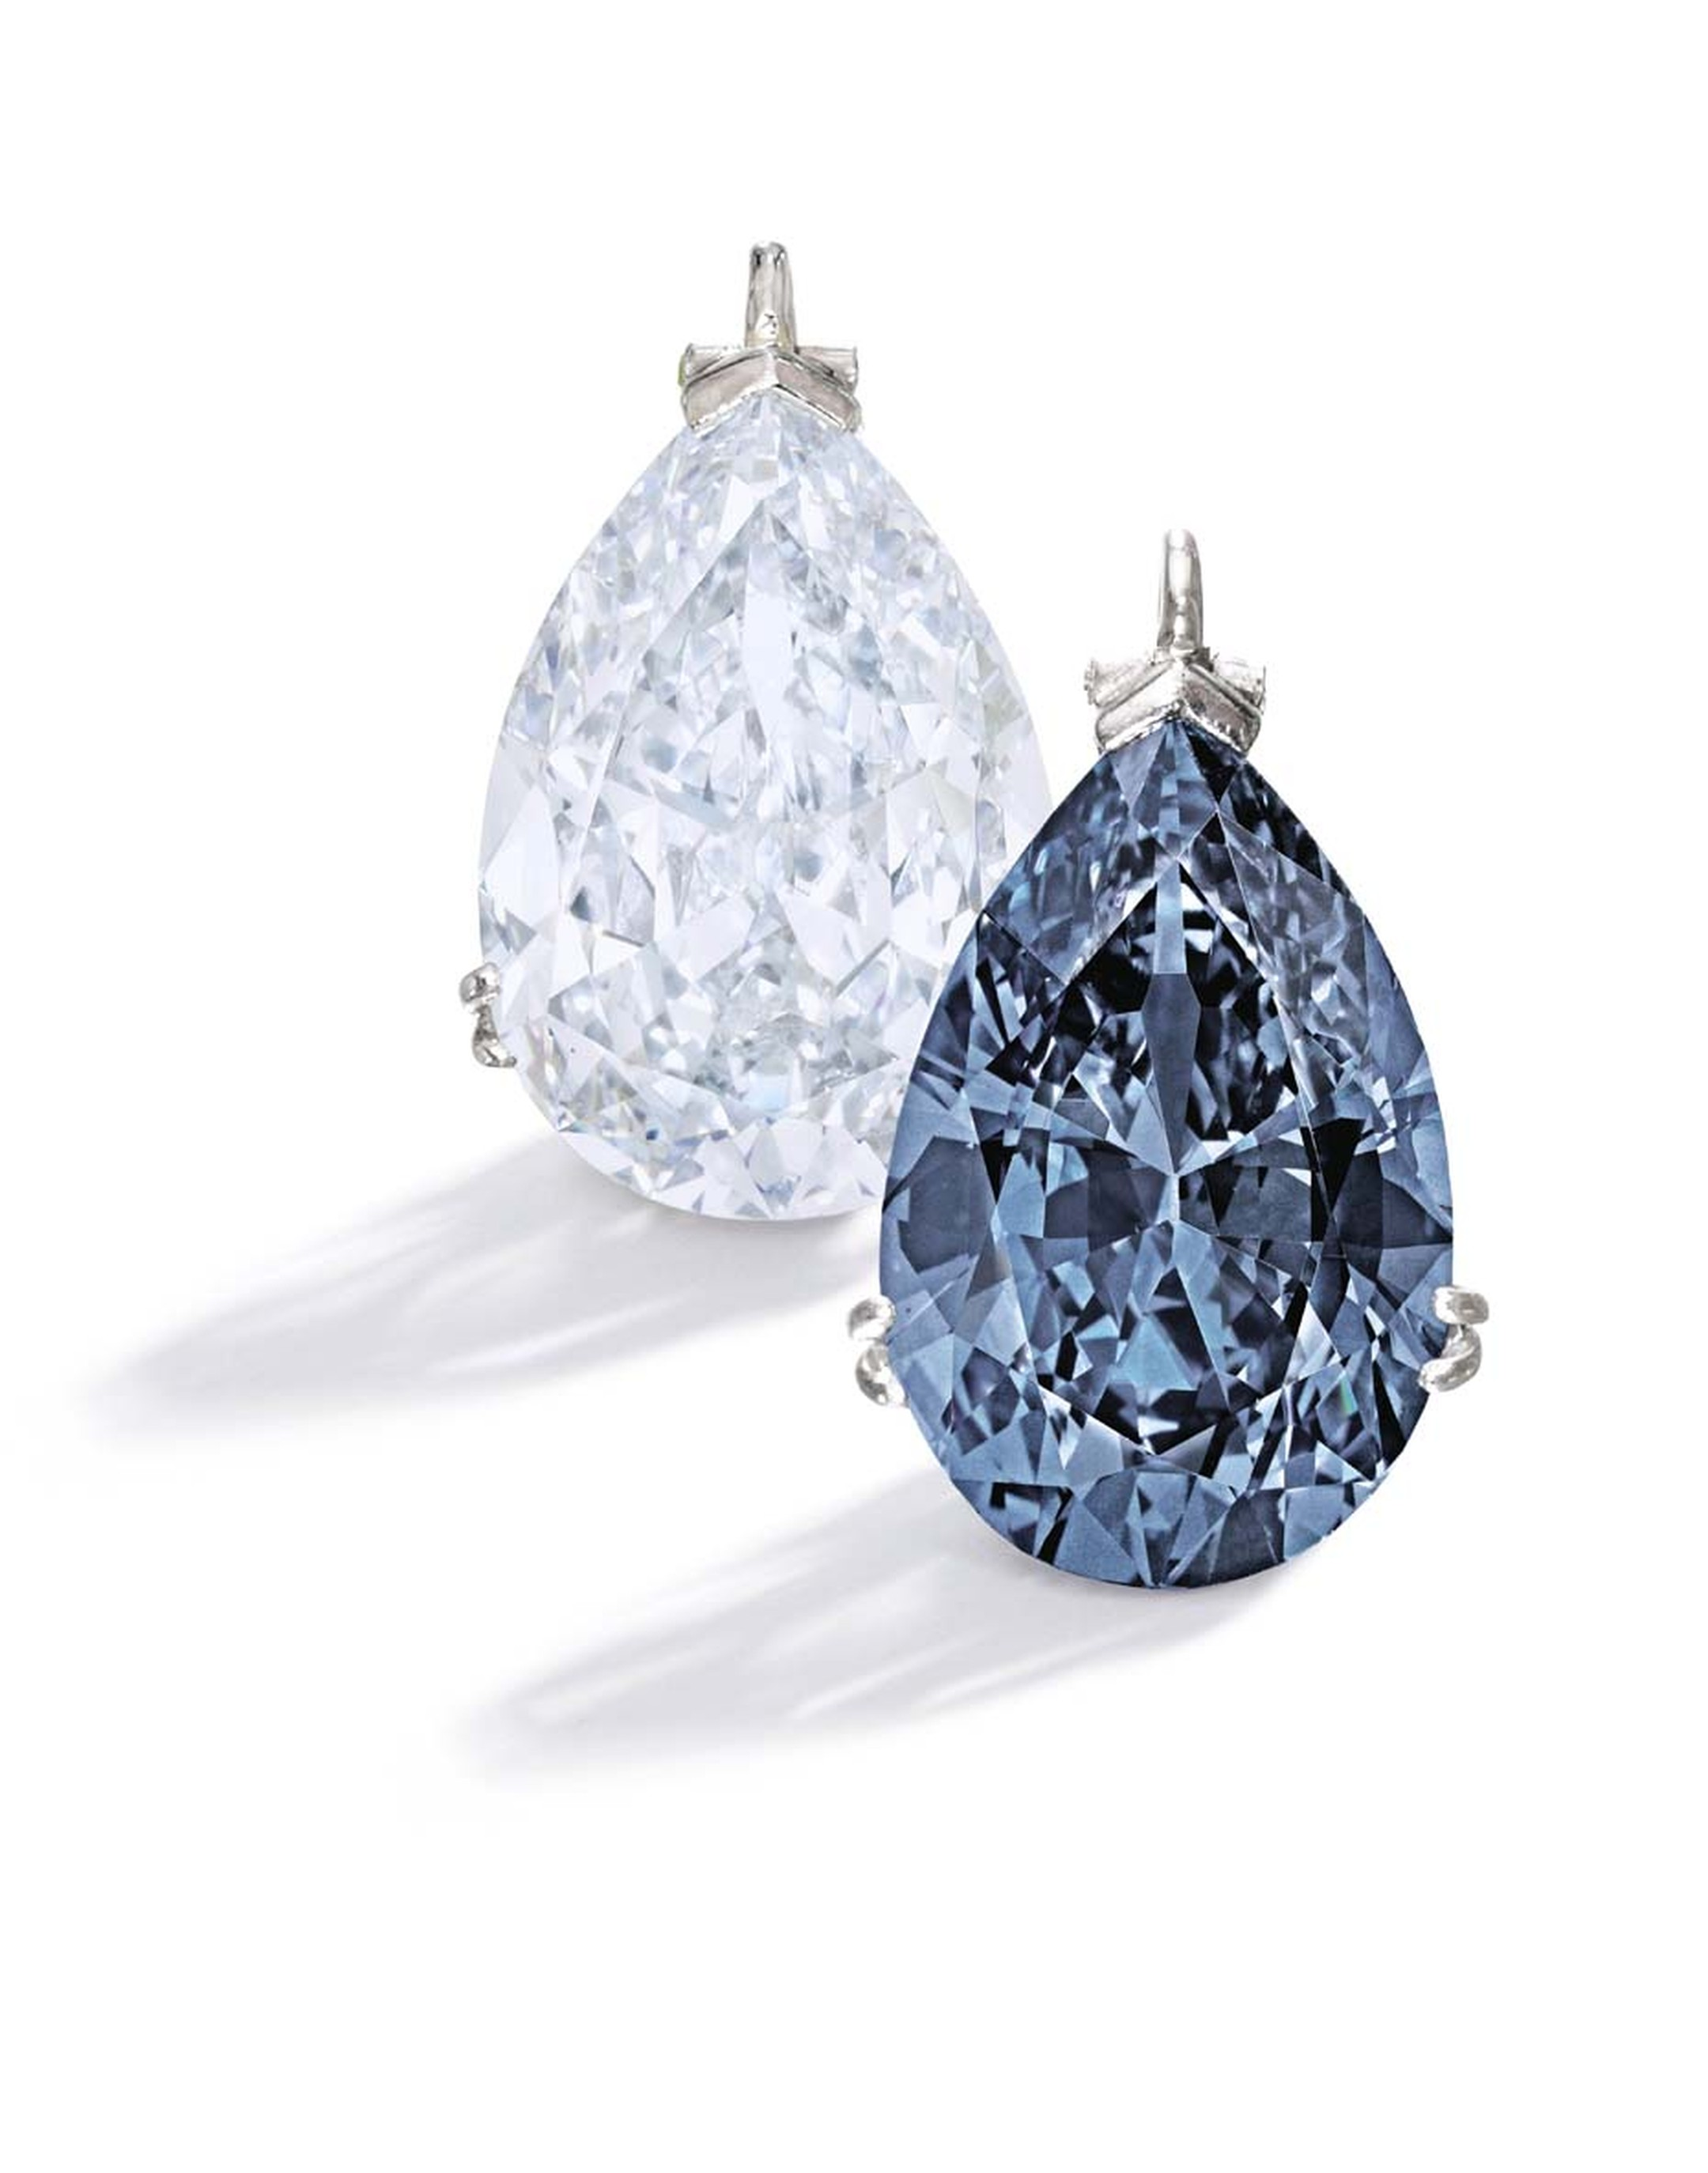 "The 9.74ct Fancy Vivid blue diamond was bought by a private collector from Hong Kong who fought off competition from six other bidders during a tense 20-minute auction and went on to christen the record-breaking stone ""The Zoe Diamond""."